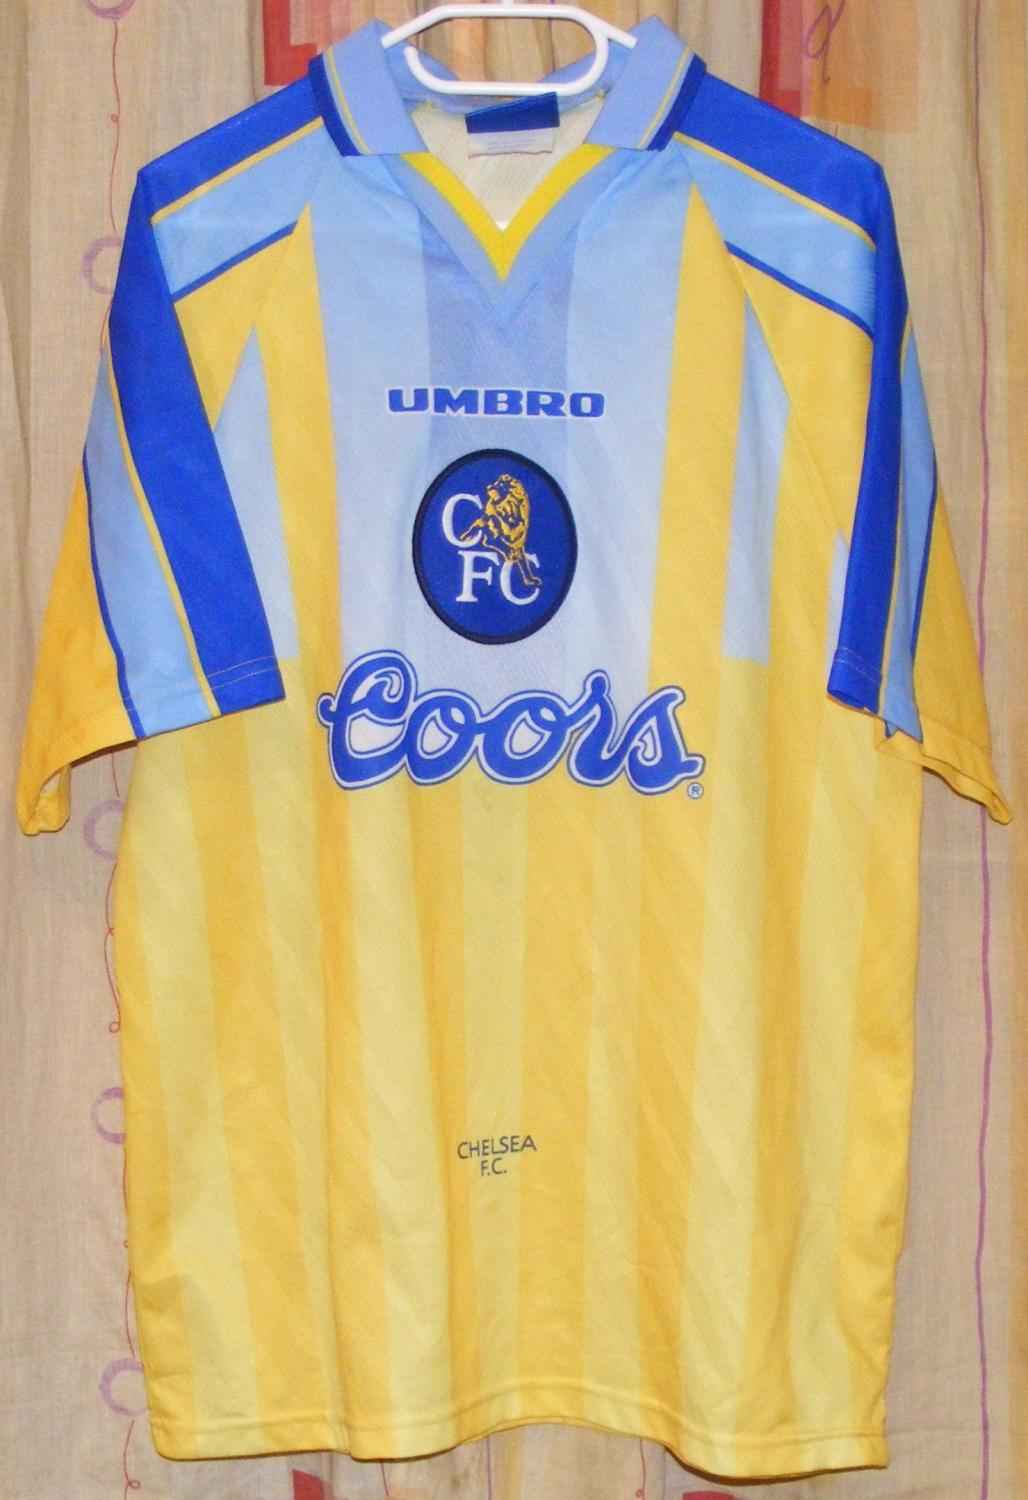 Chelsea Away football shirt 1996 - 1997. Sponsored by Coors